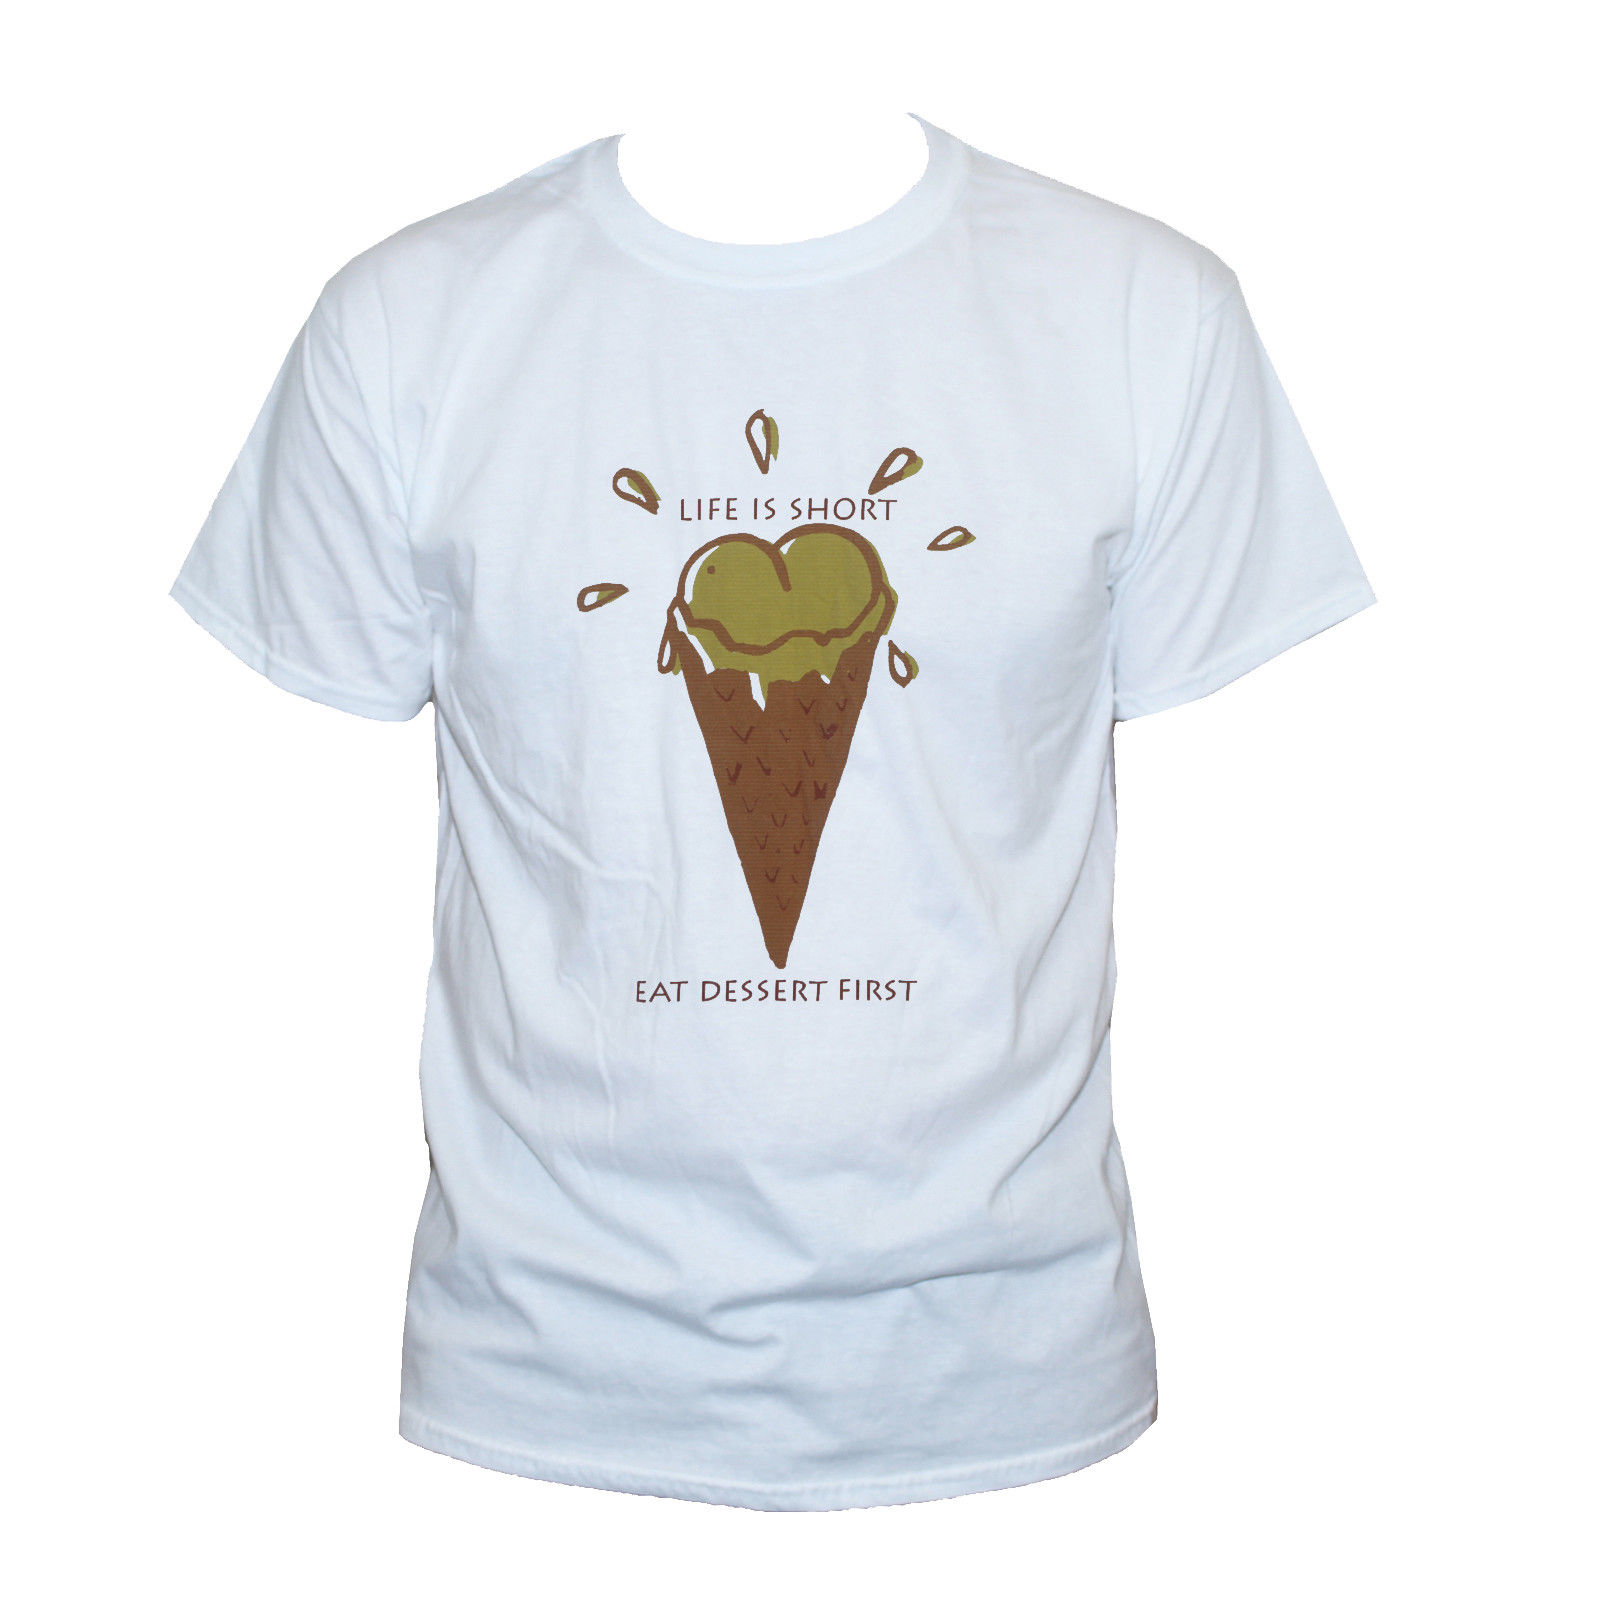 Funny Ice Cream T Shirt Rude Stag Hen Offensive Graphic Printed Tee S M L XL XXL Mens Print T-Shirt 100% Cotton Top Tee